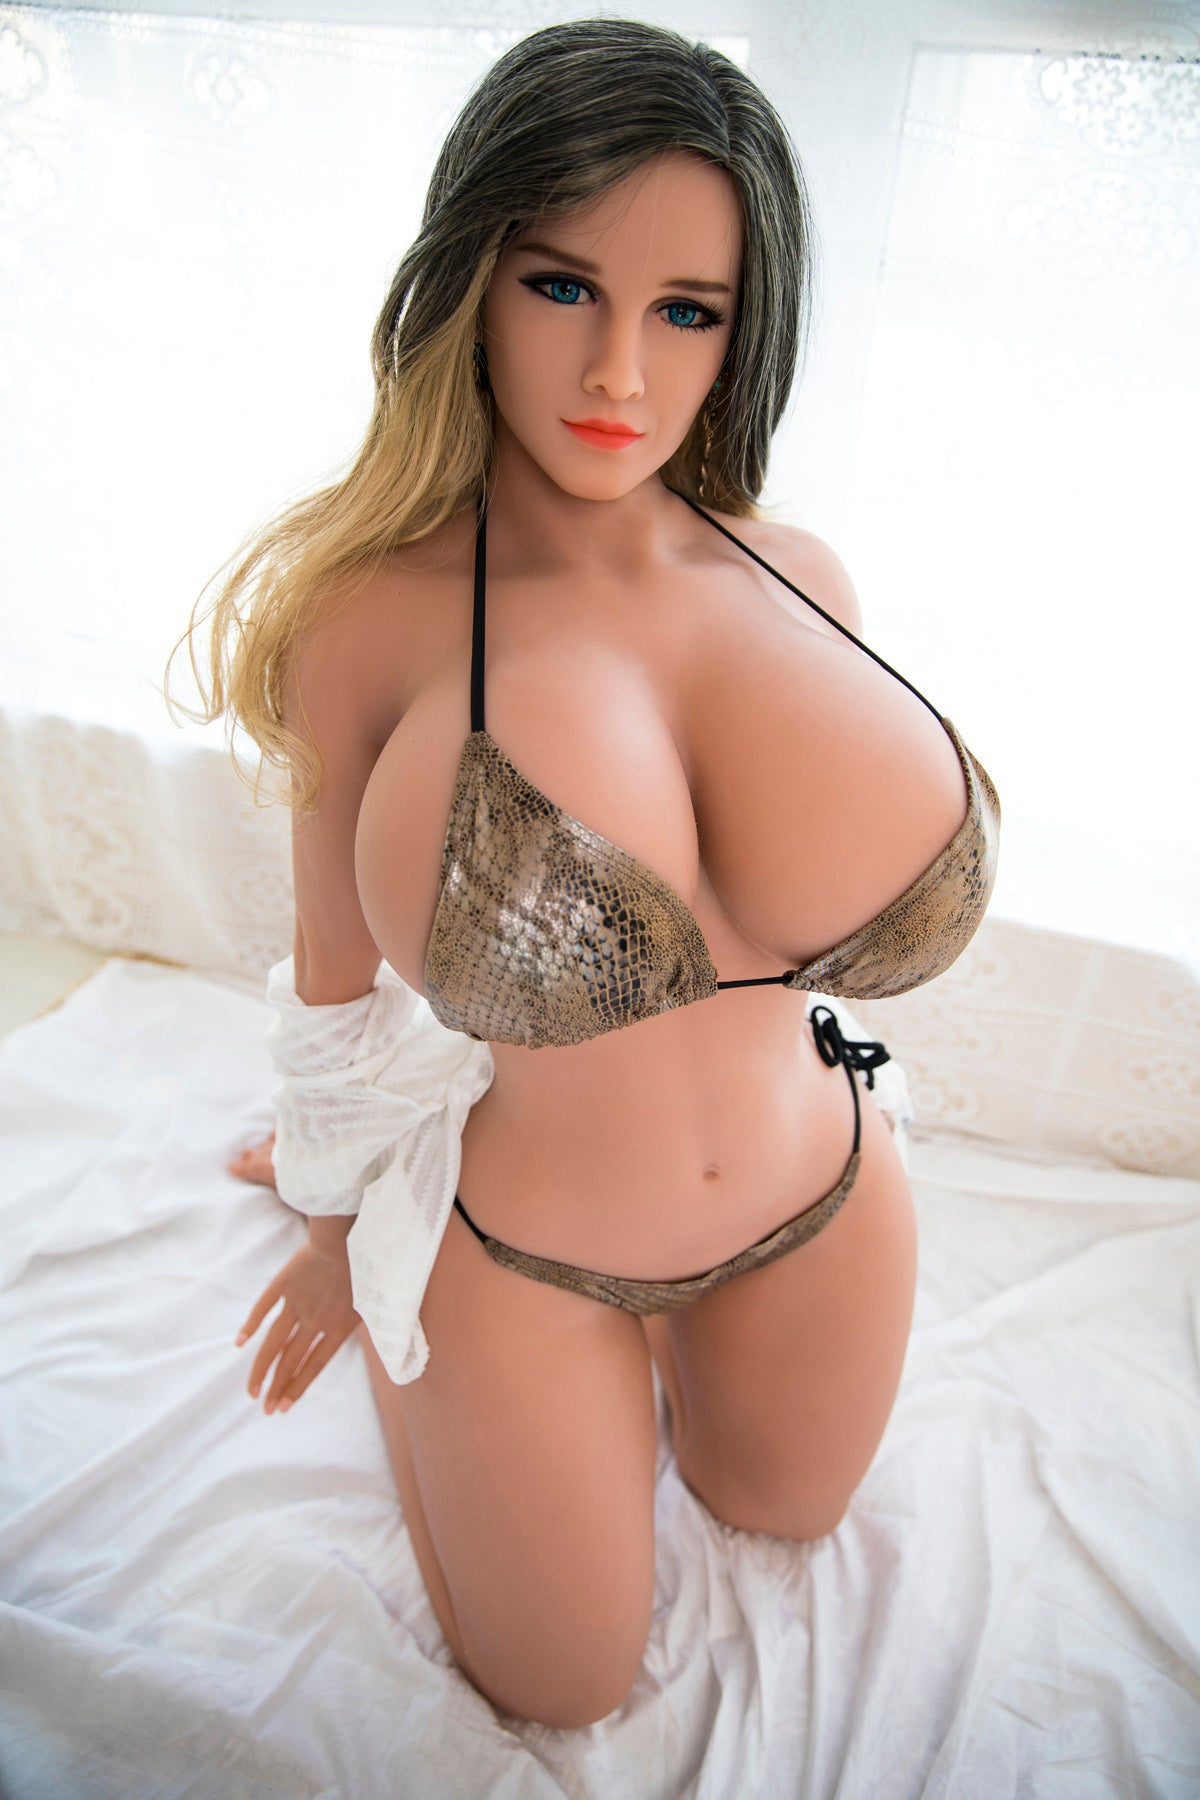 ISABELLA: 5ft 7in (170cm) Big Booty Lifelike Sex Doll